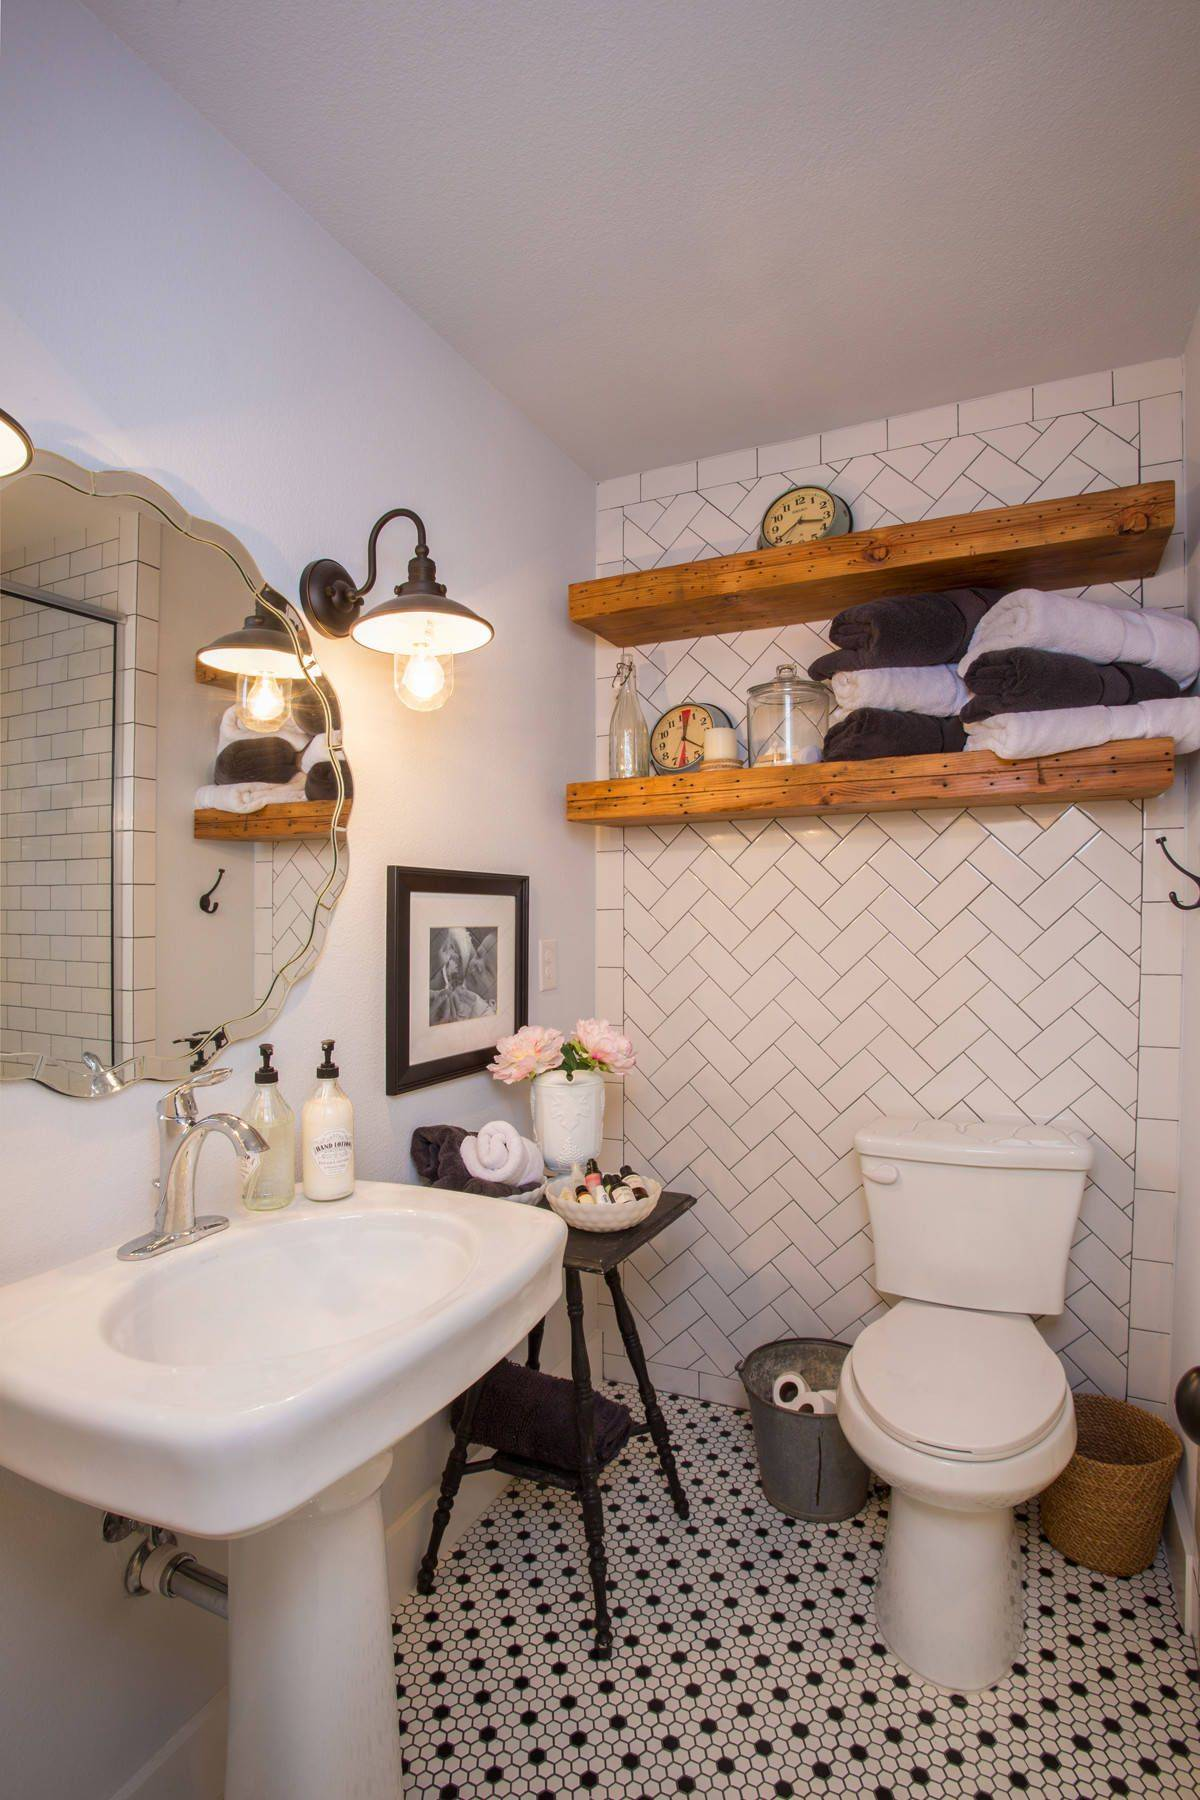 Herringbone-layout-of-white-tiles-in-the-backdrop-creates-a-unique-appeal-inside-this-bathroom-26517